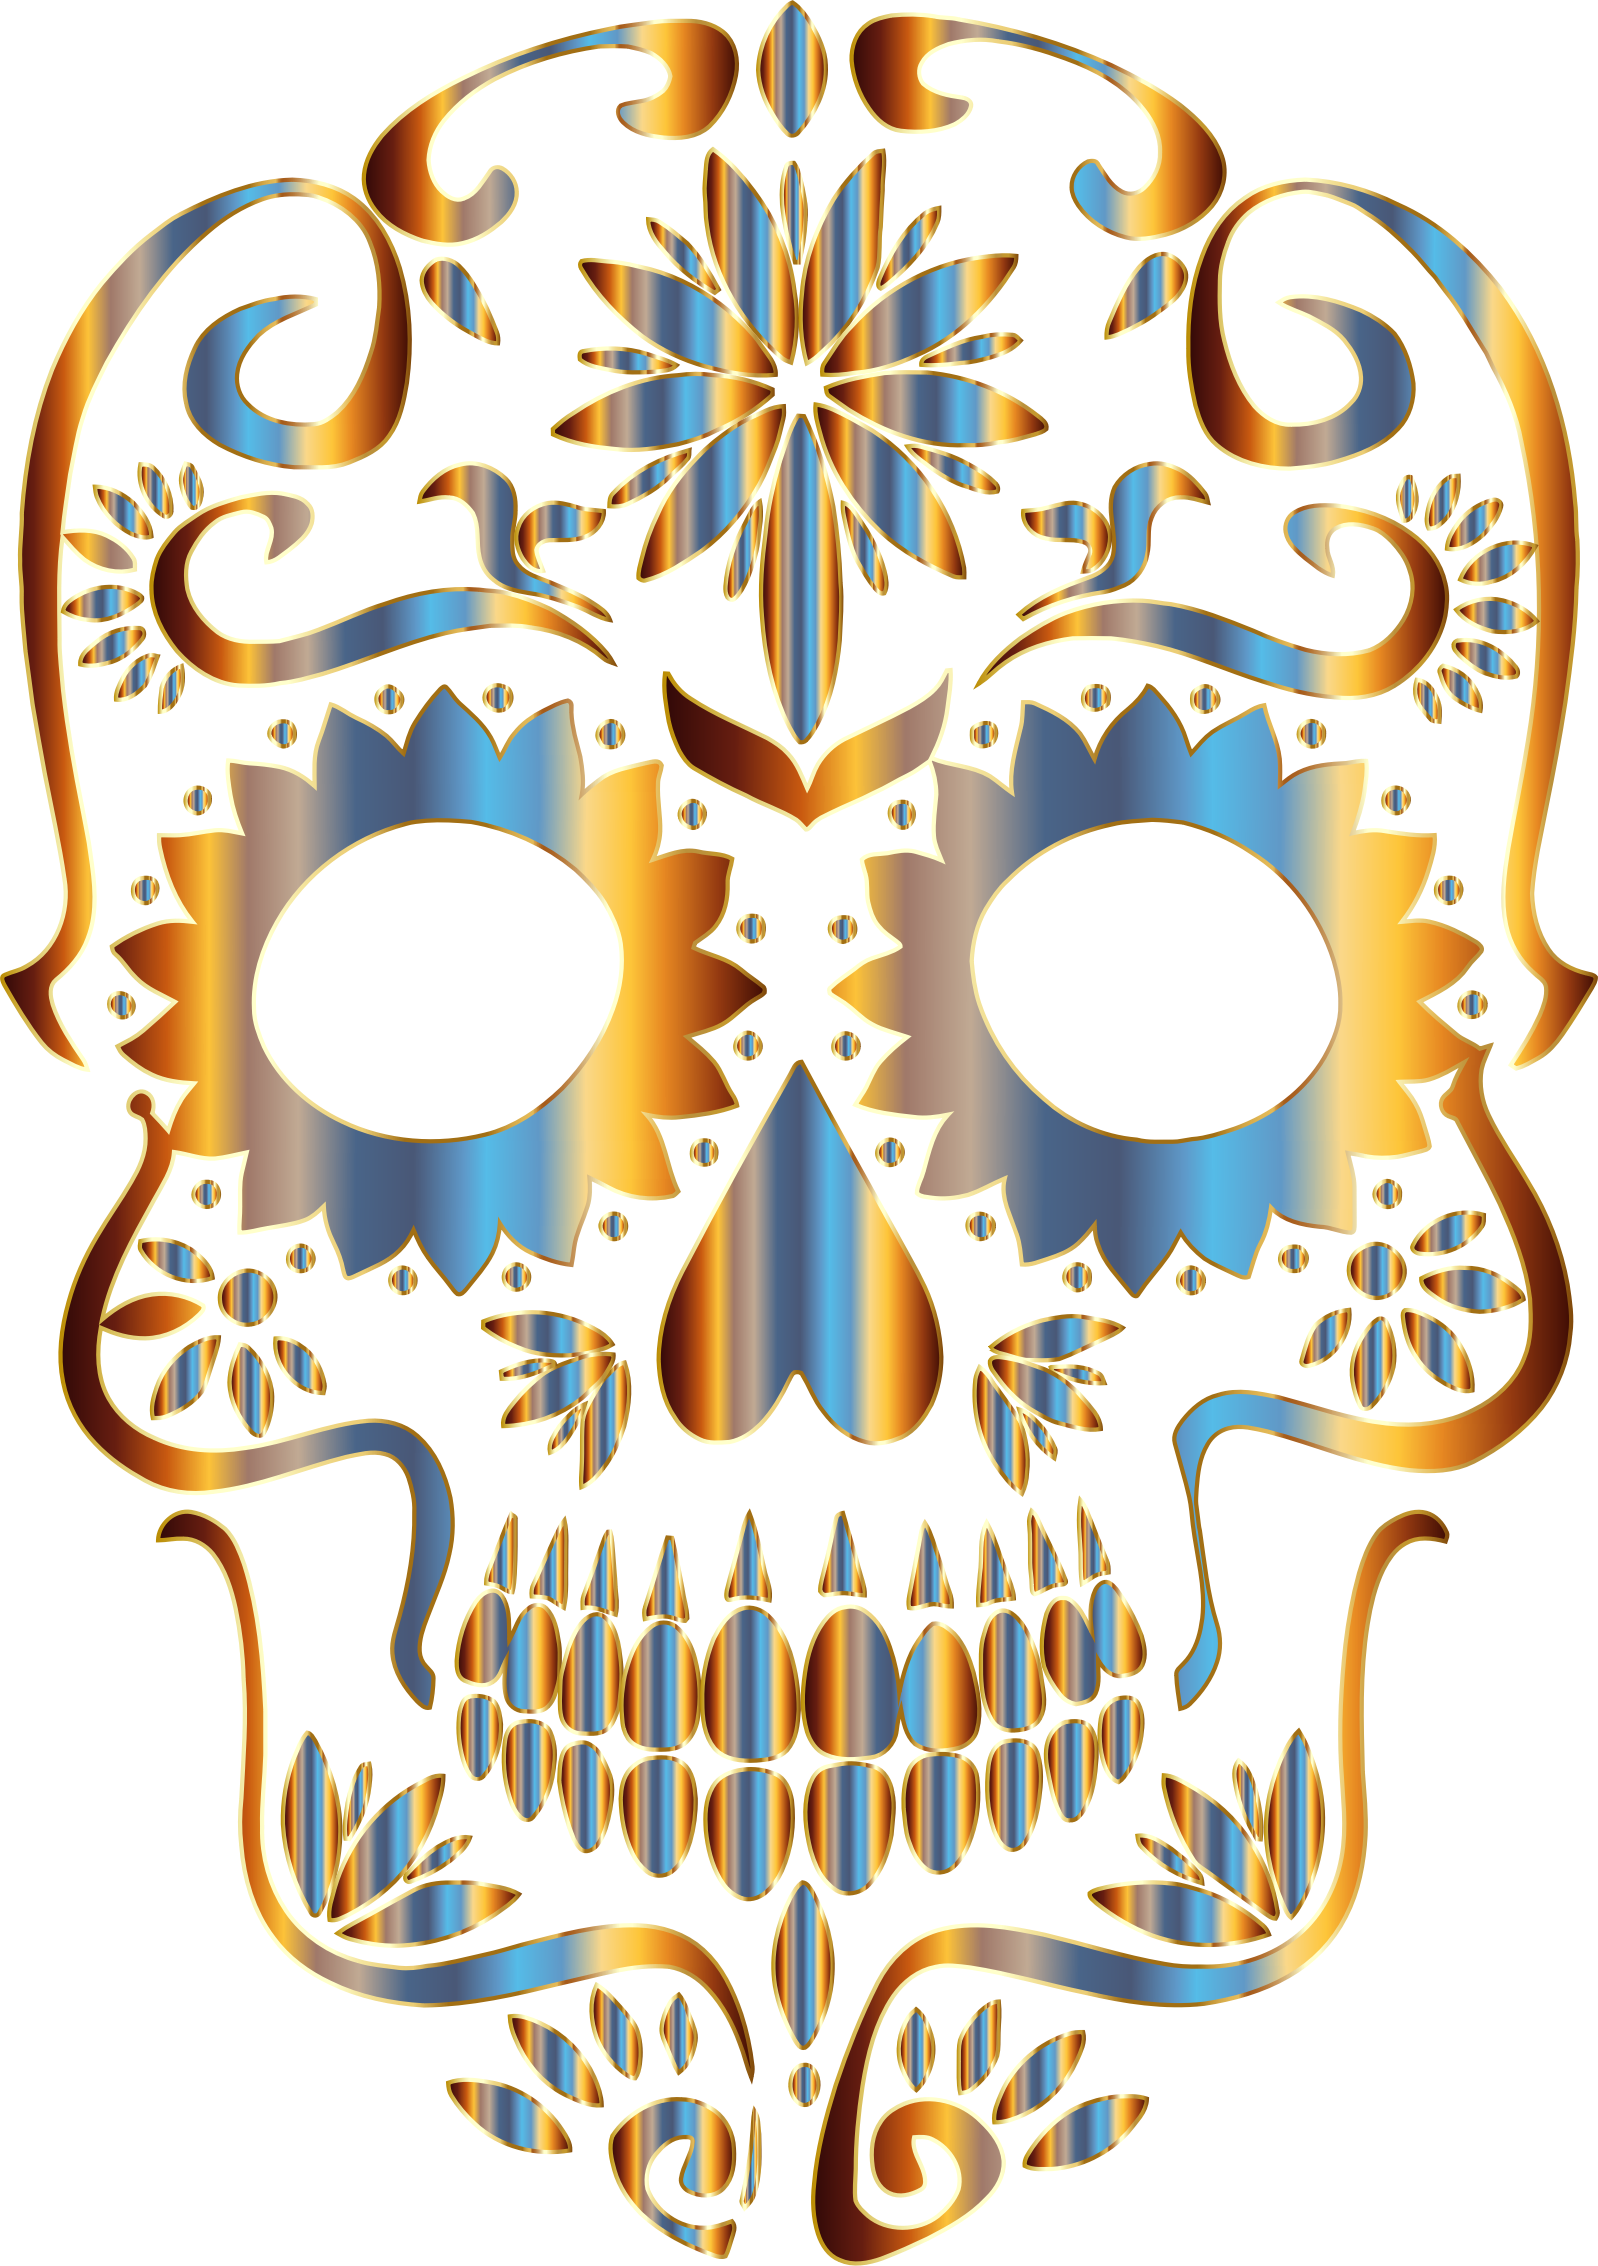 Chromatic Sugar Skull Silhouette 2 No Background by GDJ